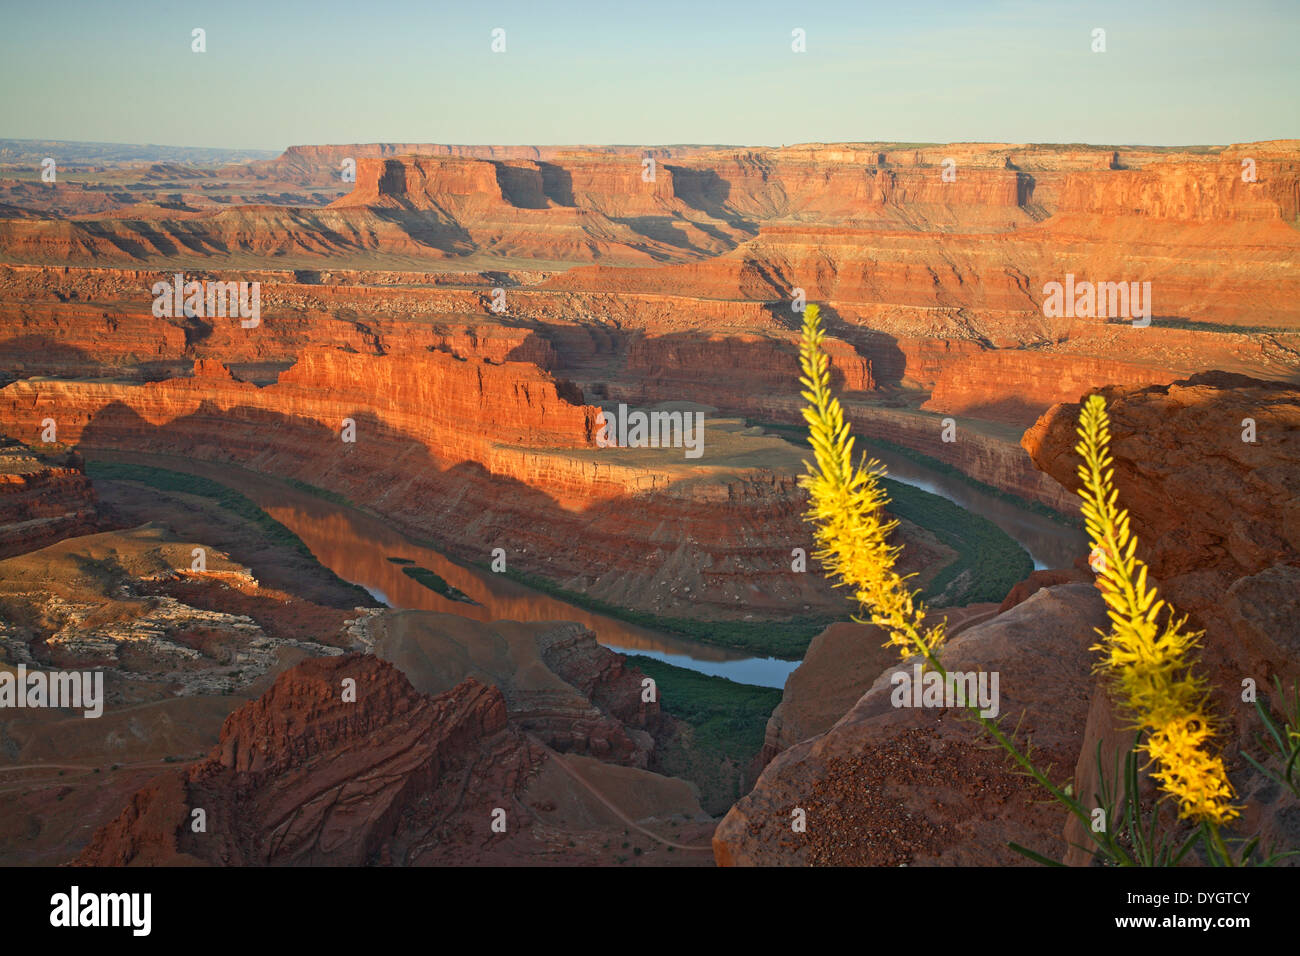 Colorado River, canyons, and Prince's Plume (Stanleya pinnata) from Dead Horse Point State Park, Utah USA - Stock Image